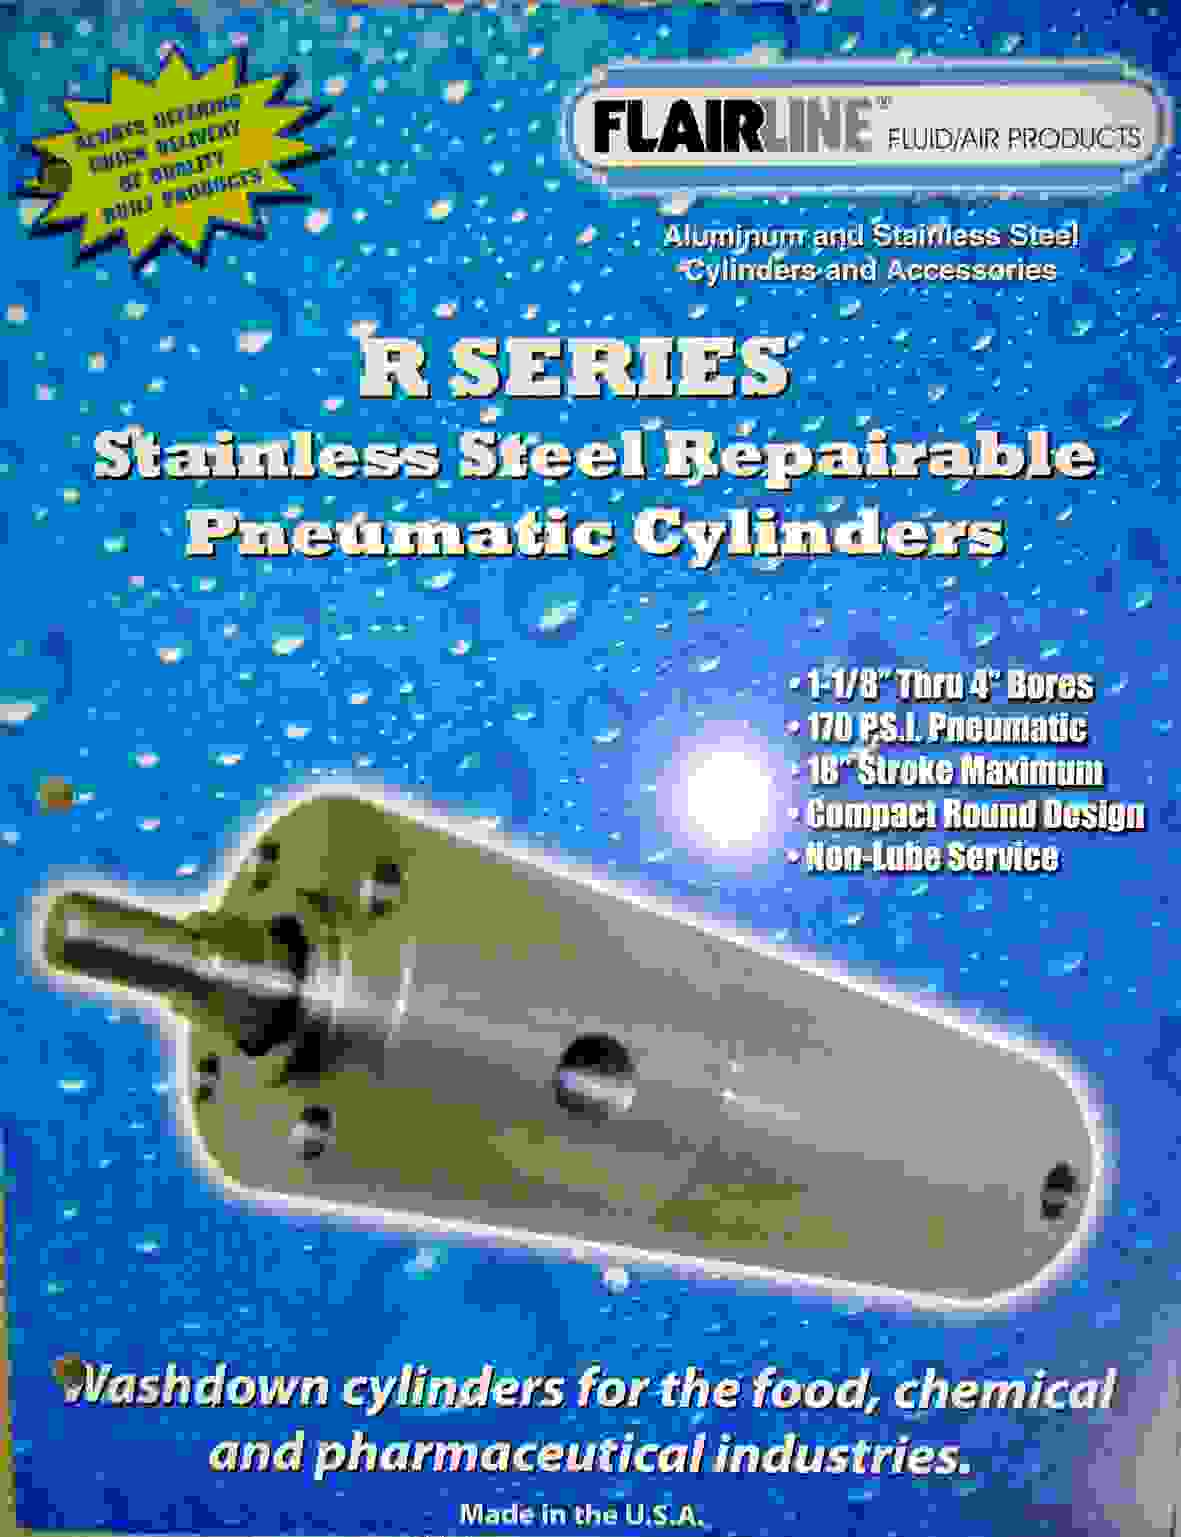 Flairline-flairline_stainless_steel_round_bore_cylinders